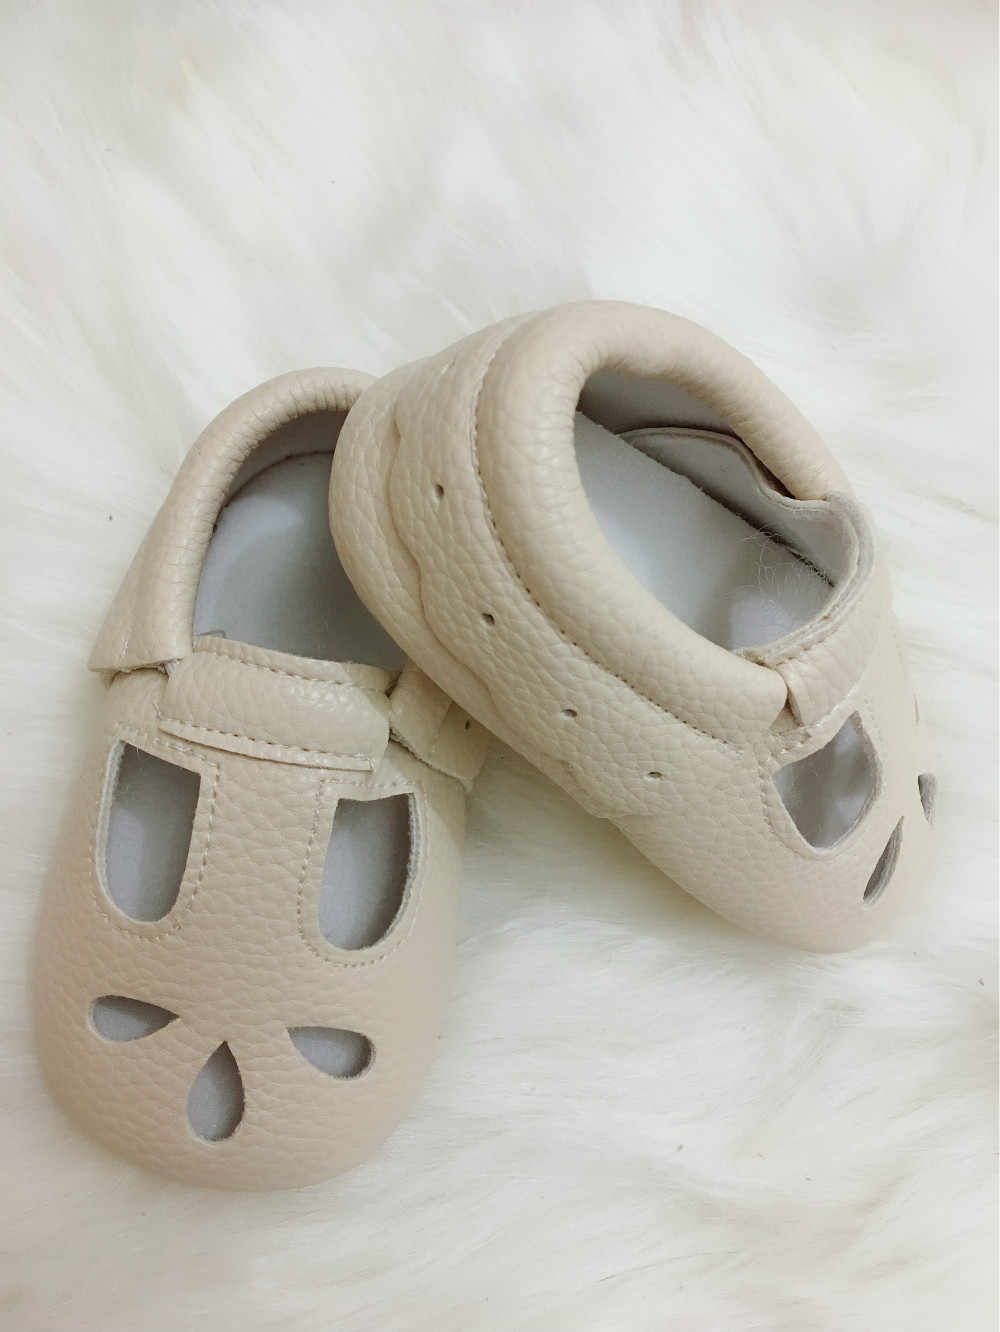 ... 2019 high quality Genuine Leather Hollow Water Drops style Baby  Moccasins Soft Sole Baby Boys Girls 53d9f96742cc